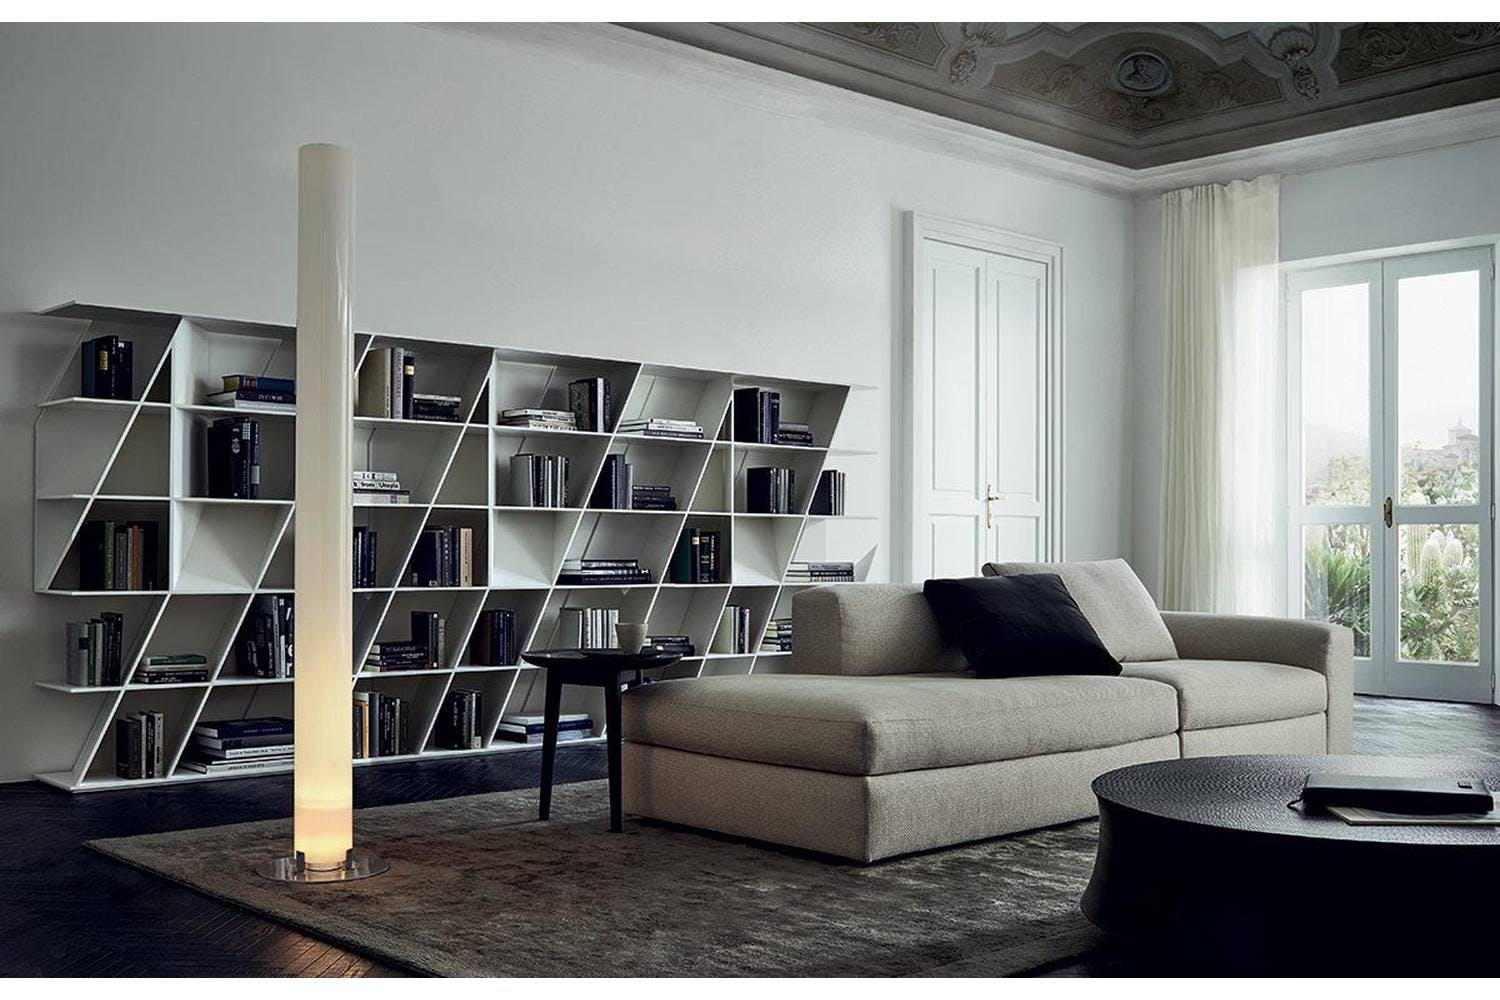 Web bookshelf by daniel libeskind for poliform poliform for Interieur design